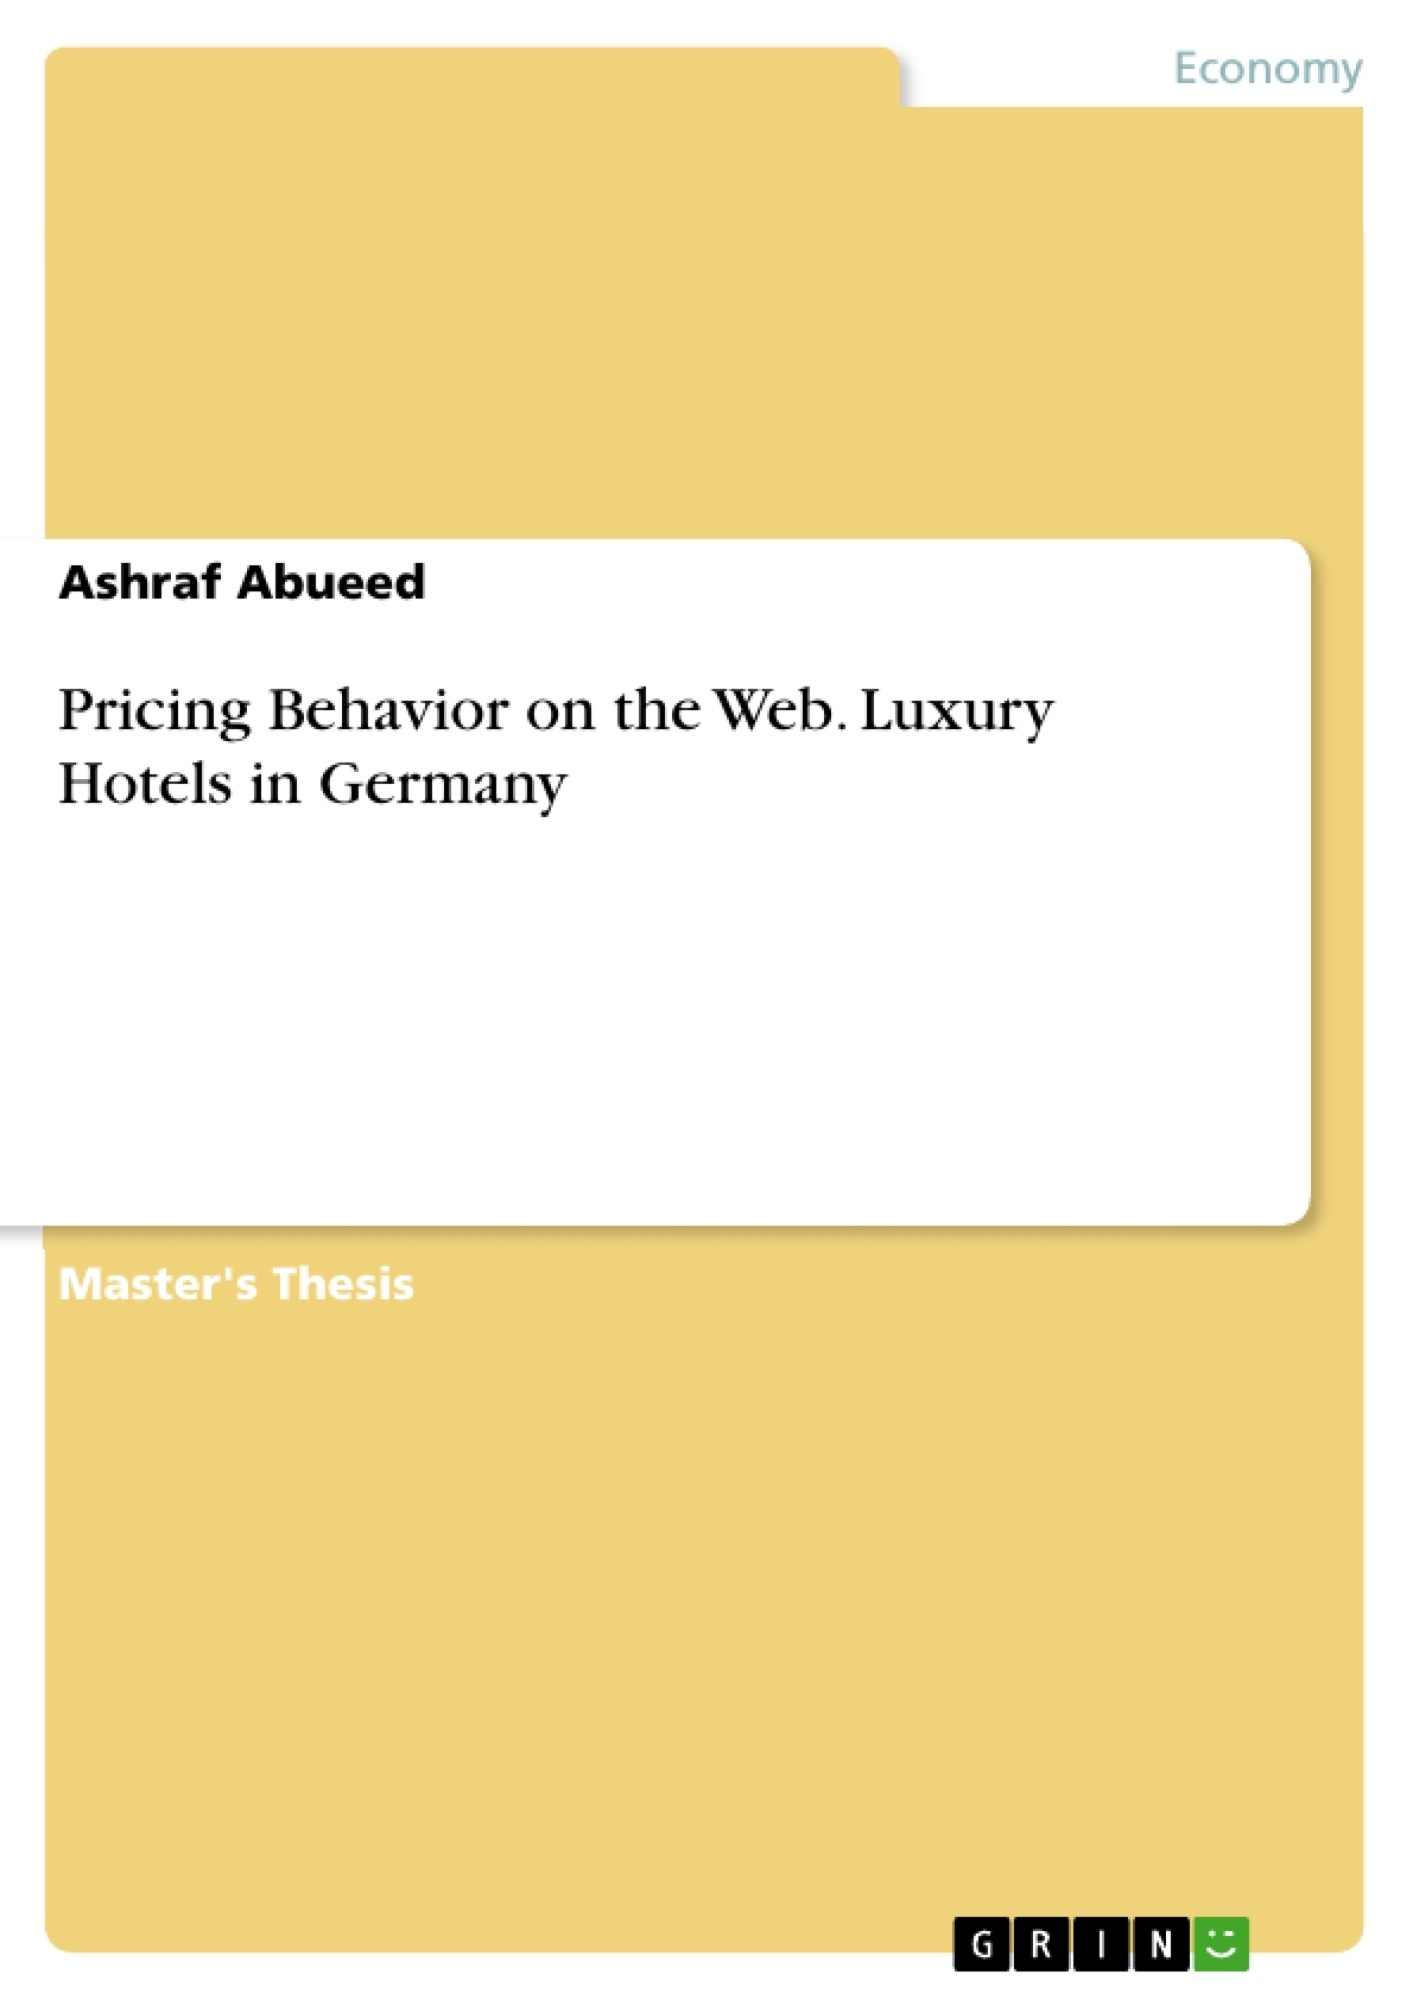 Title: Pricing Behavior on the Web. Luxury Hotels in Germany